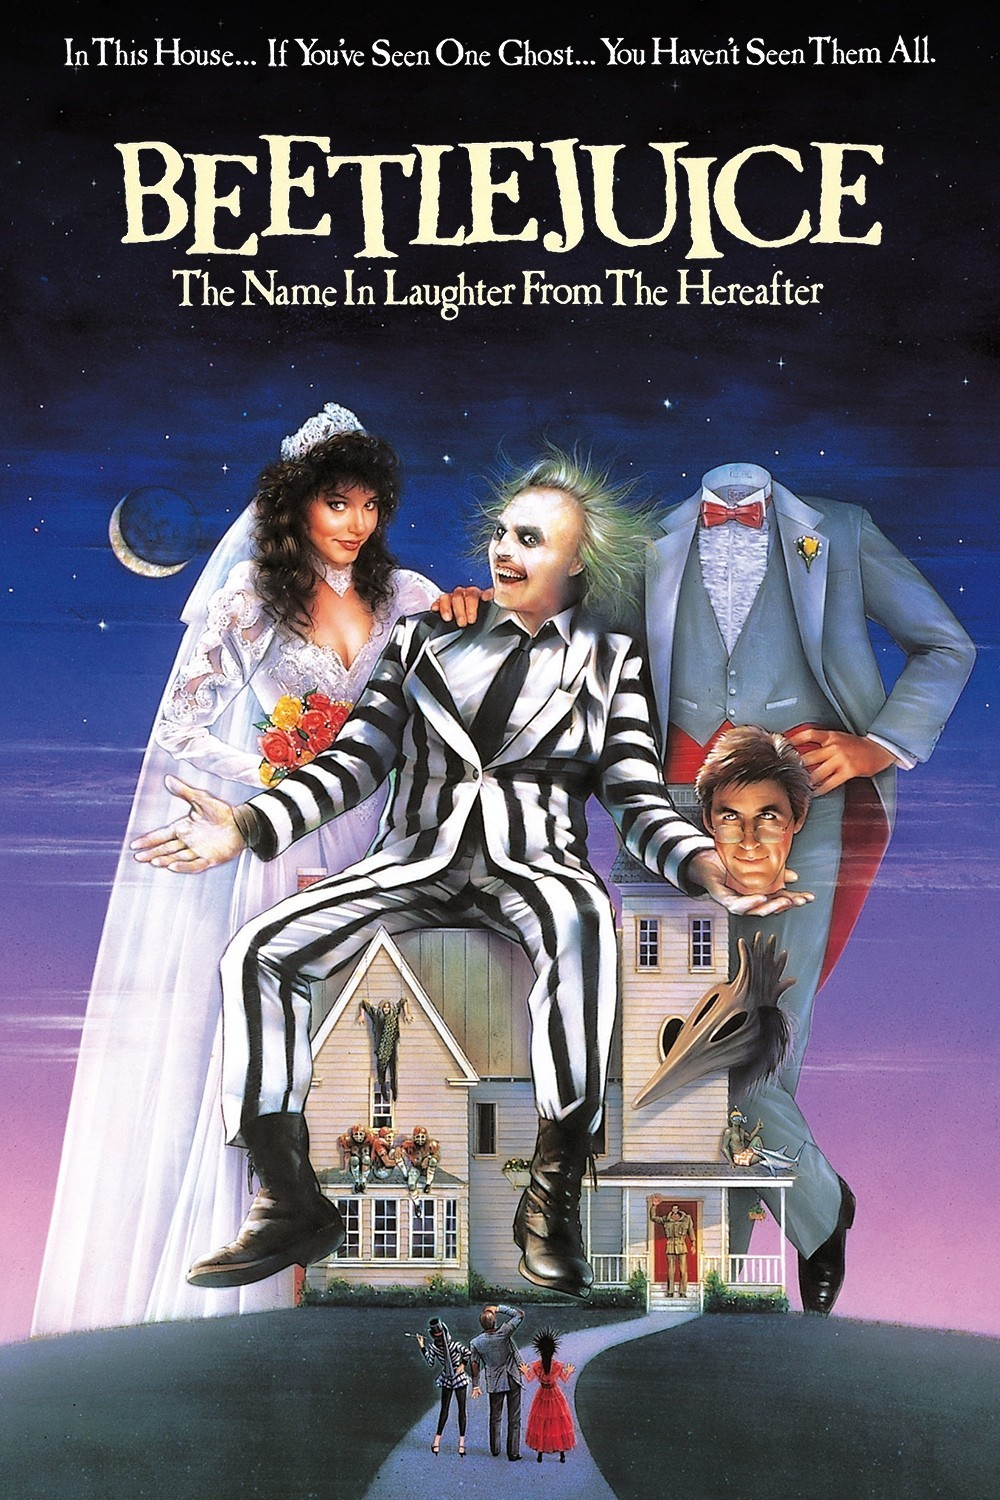 https://marciokenobi.files.wordpress.com/2013/04/beetlejuice-poster.jpg